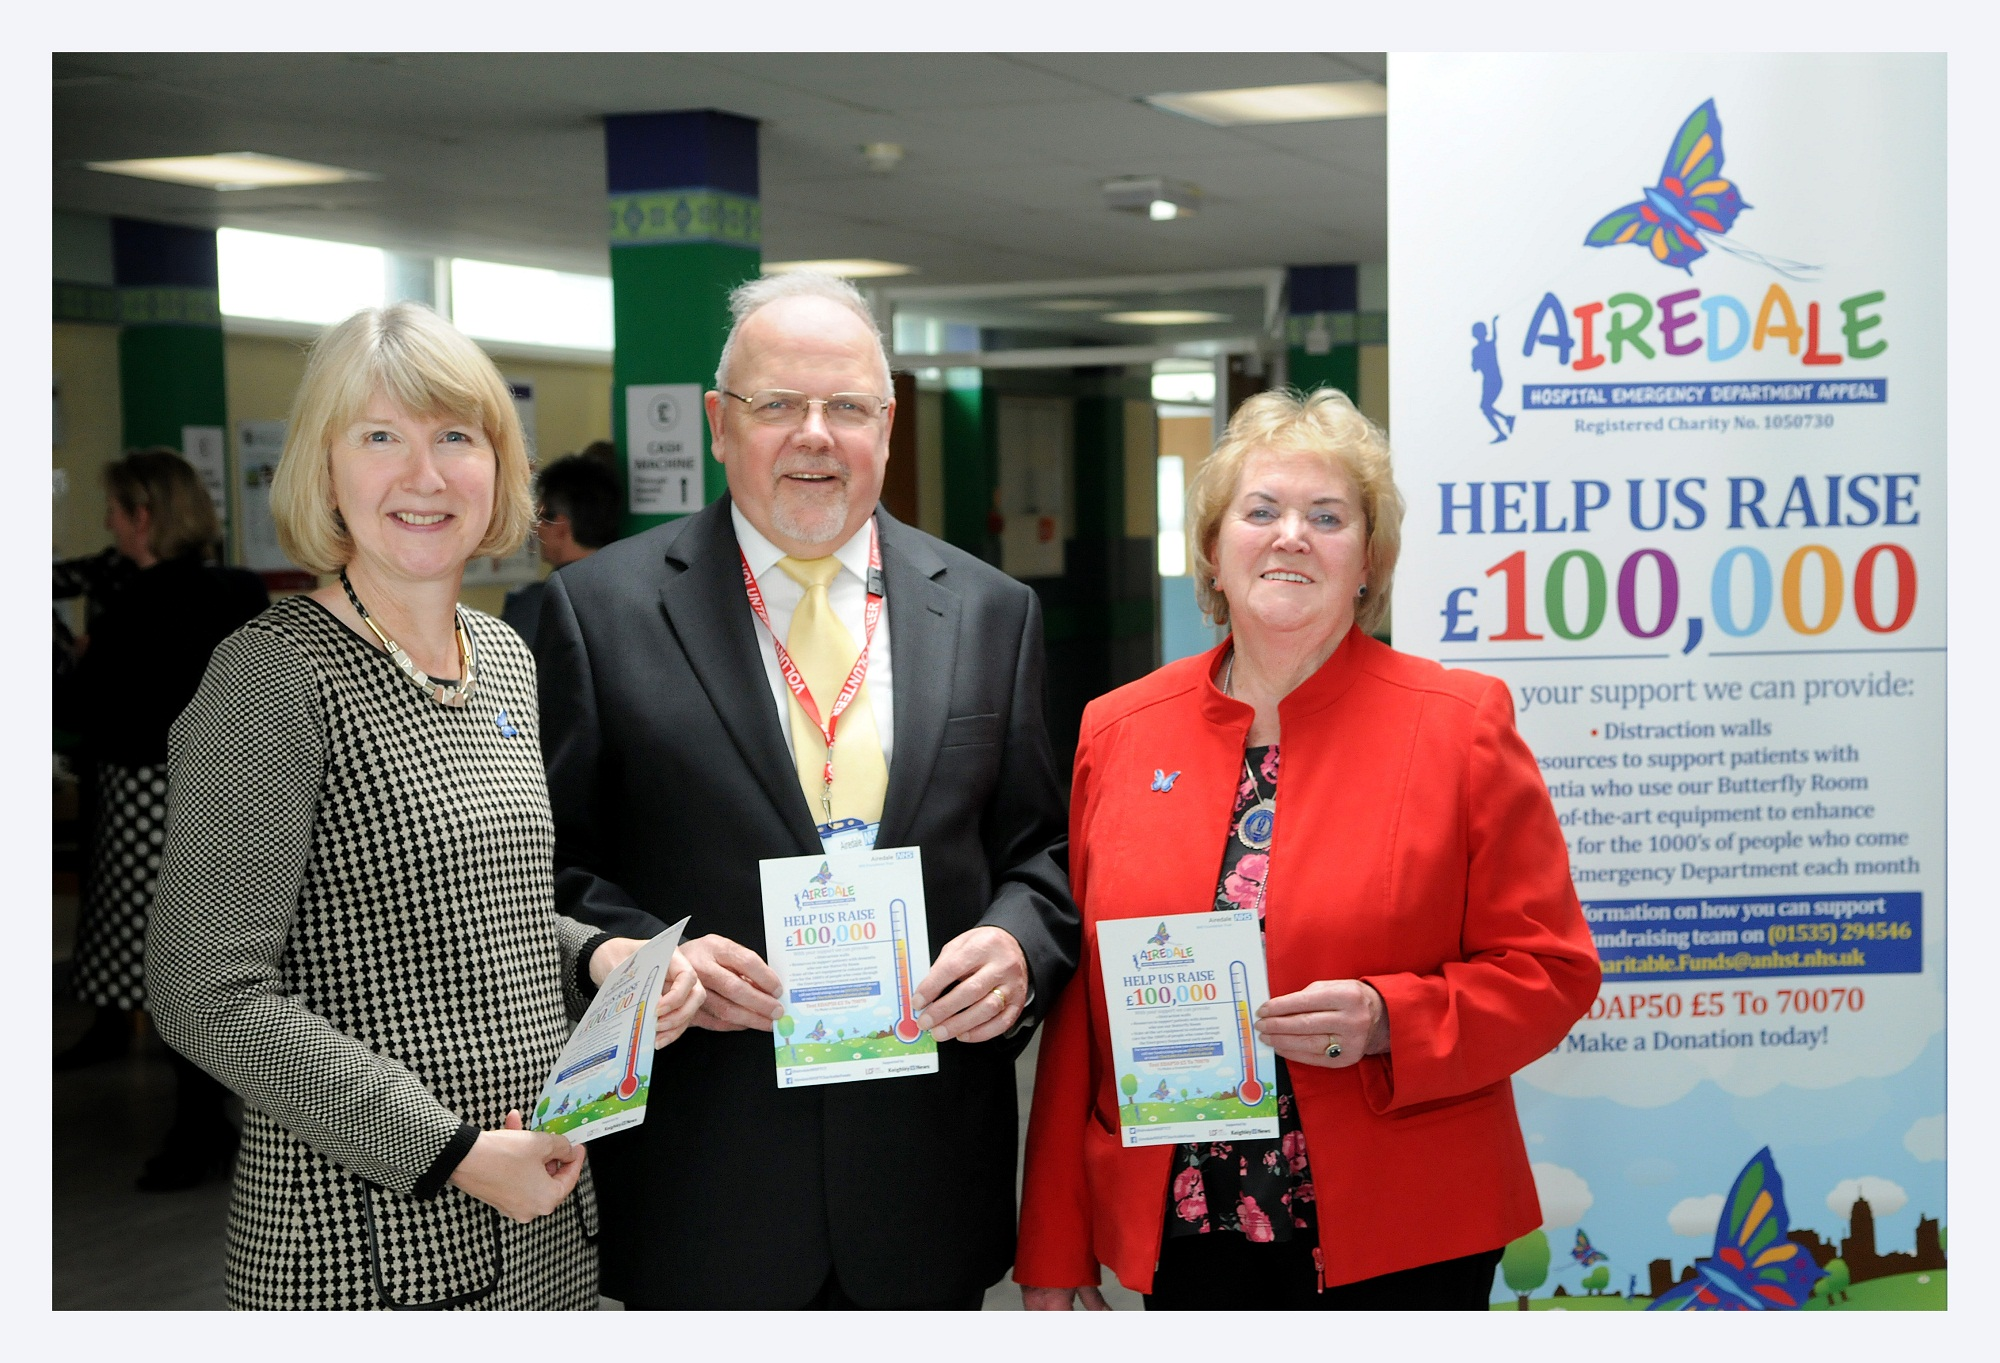 Barbara Hodkinson of the Butterfly Scheme with New Venture chairman Mike Yates and Eileen Proud, Friends of Airedale chairman